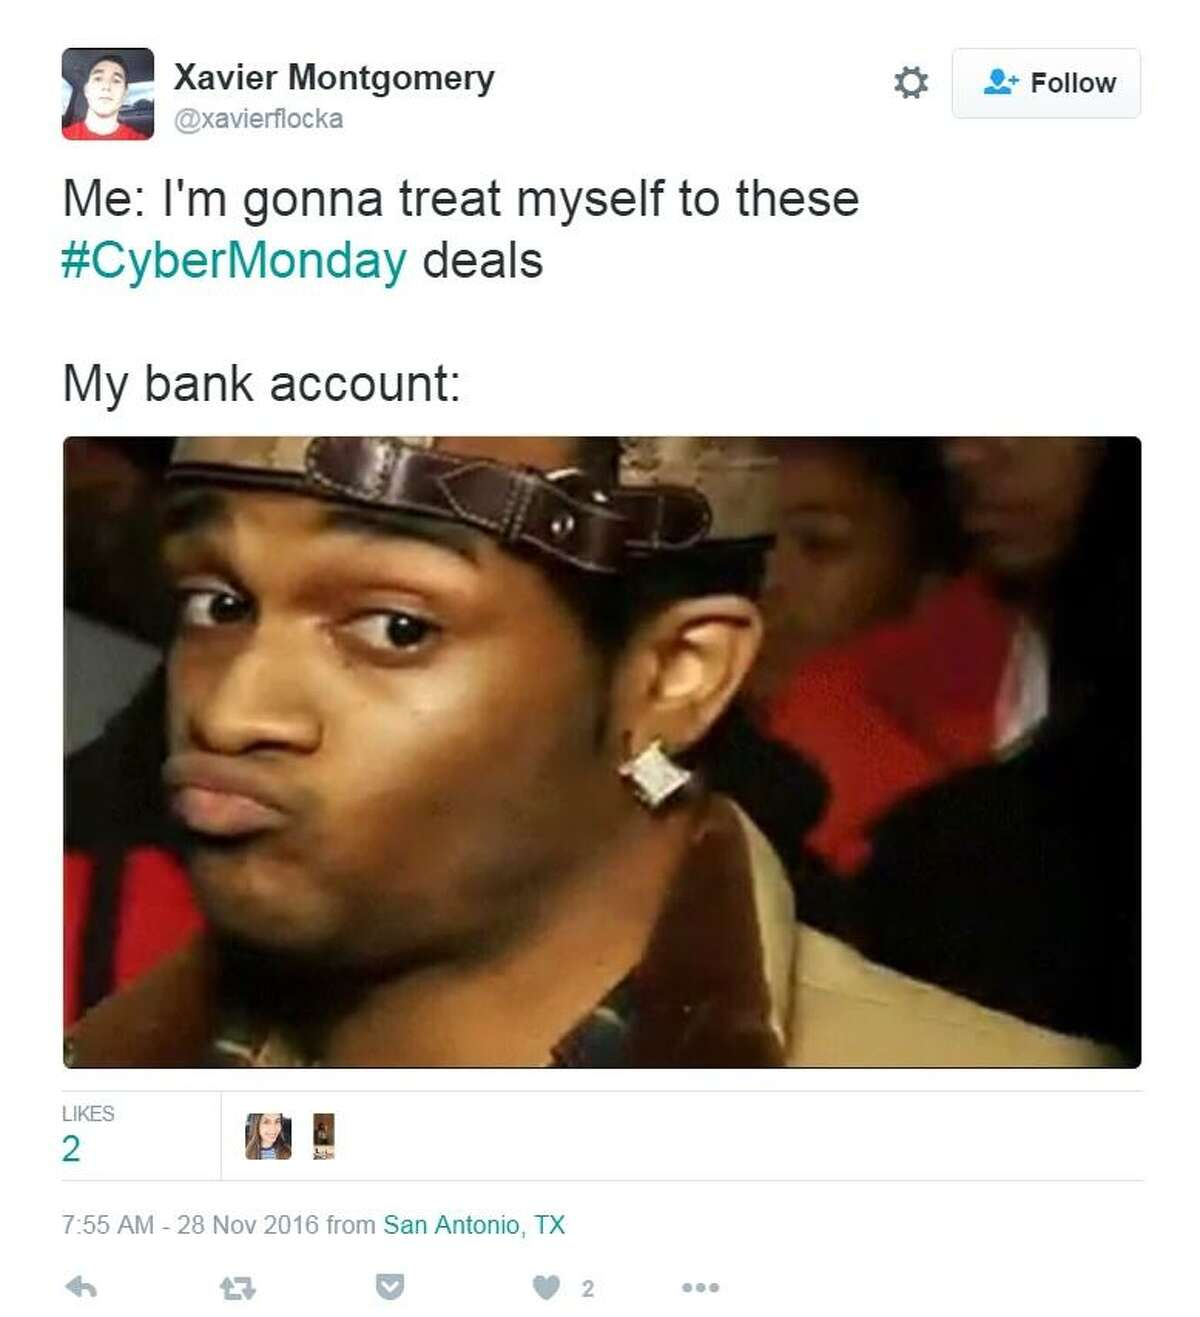 Cyber Monday brings out all sorts of humor on social media.